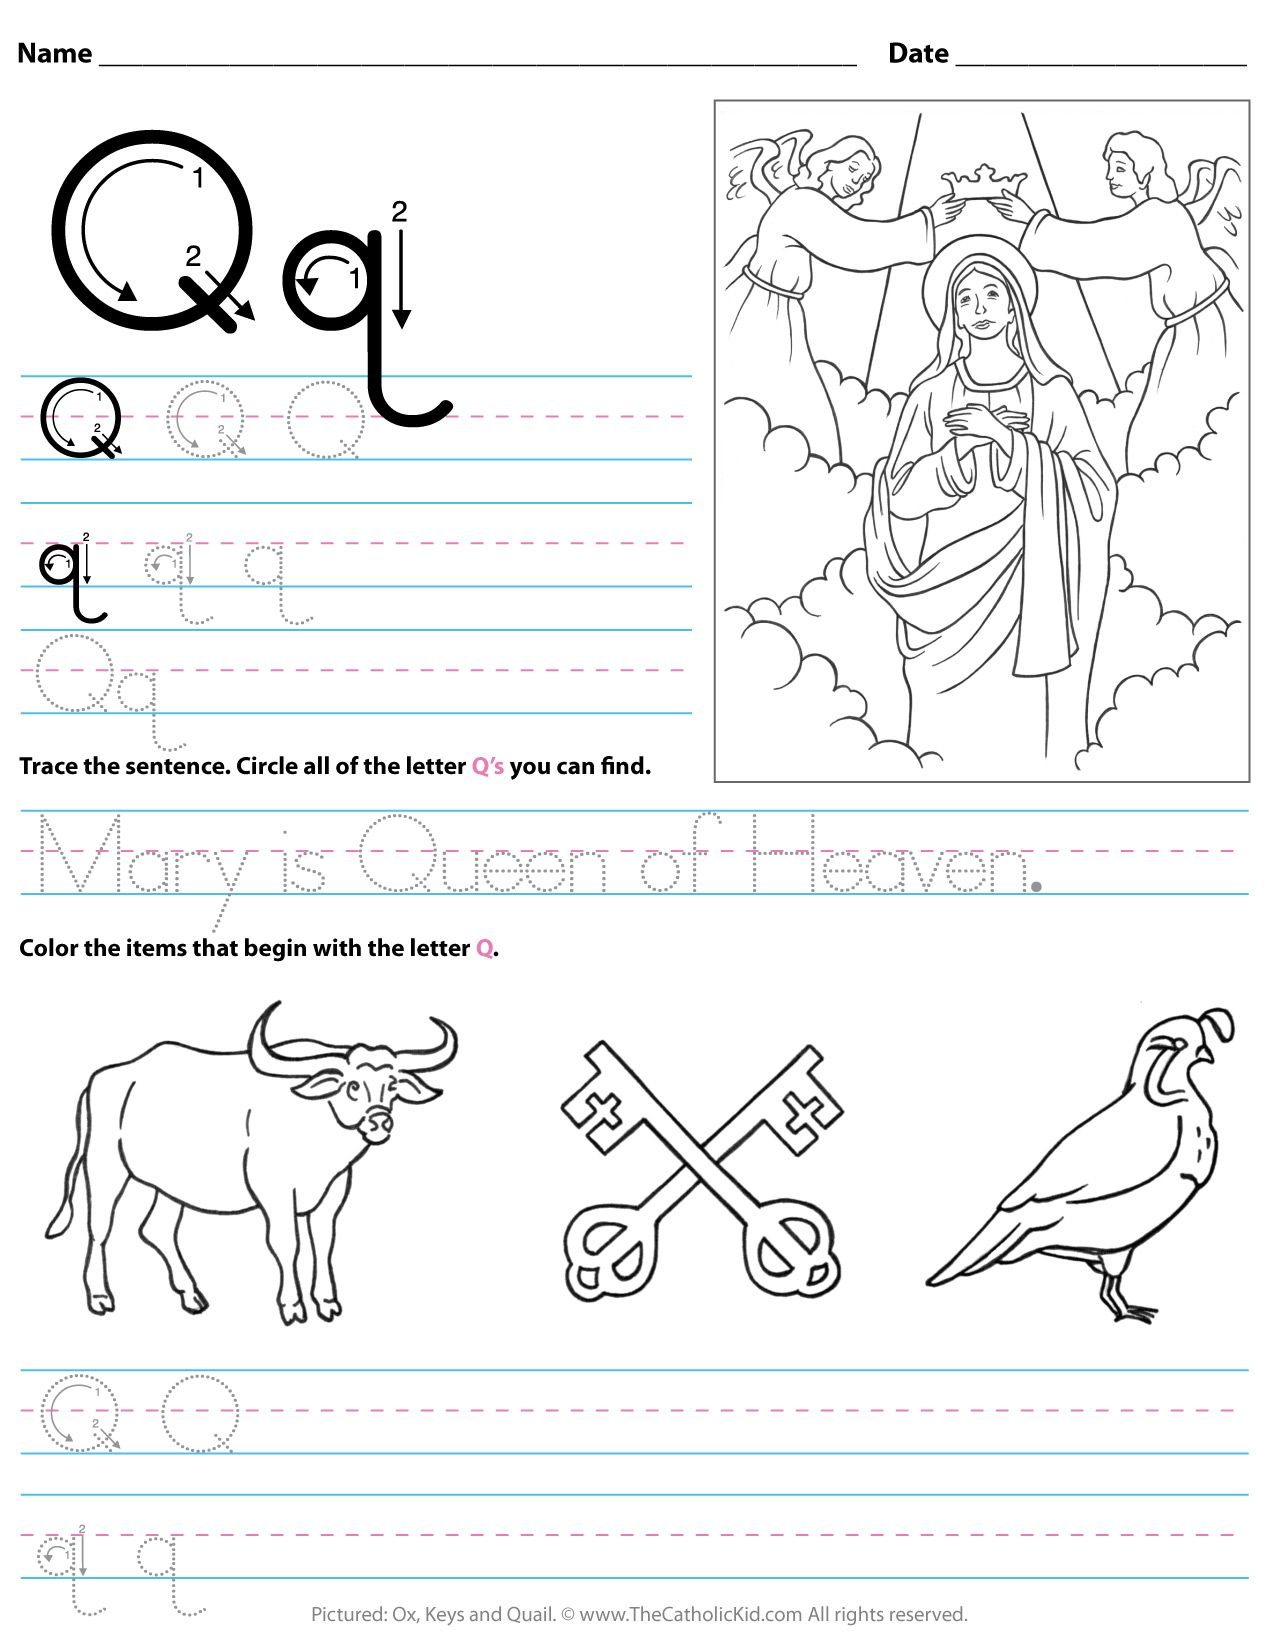 Pin By Paulette Mares On Catholic Teaching For Kids In 2020 Tracing Worksheets Preschool Letter Q Worksheets Preschool Worksheets